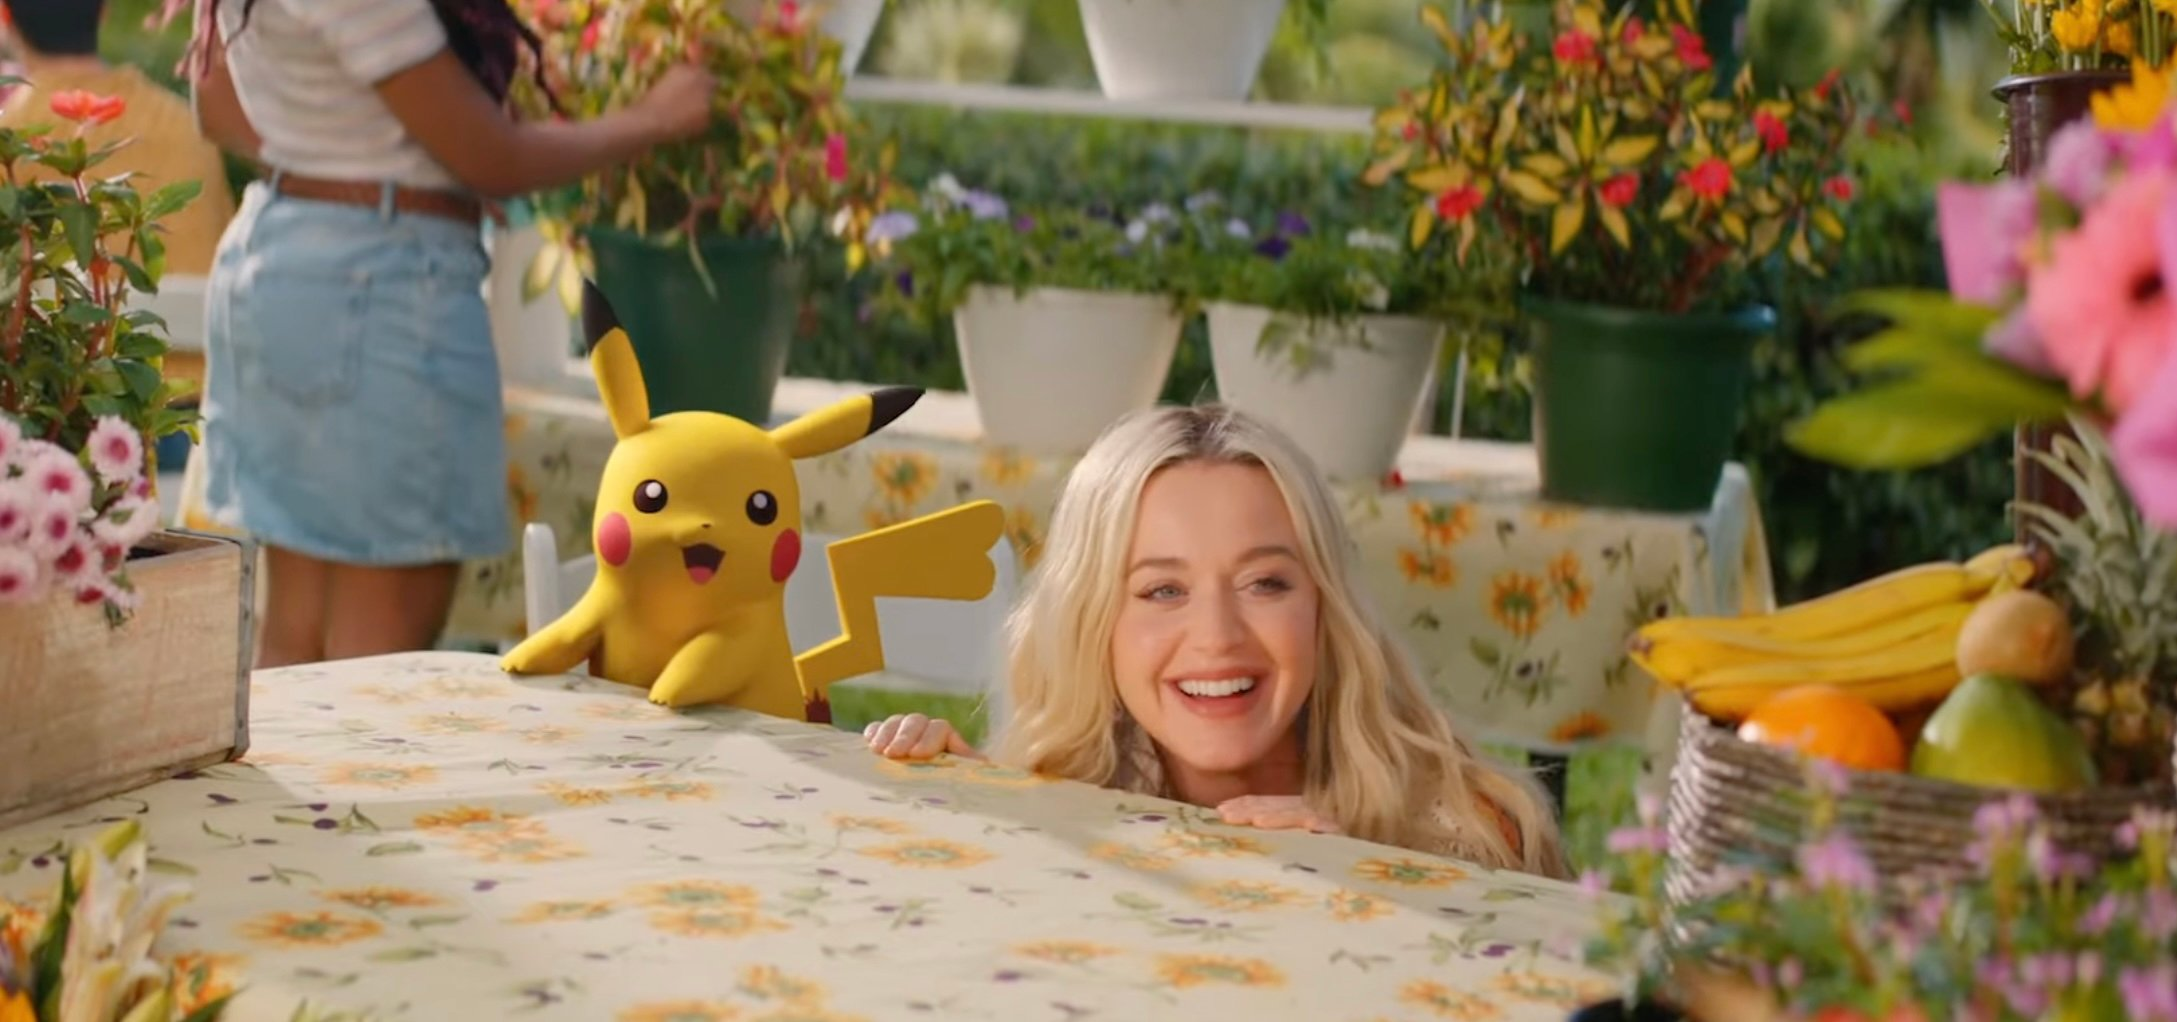 Katy Perry's Pokemon song 'Electric' won't melt your popsicle, but it should make you smile screenshot